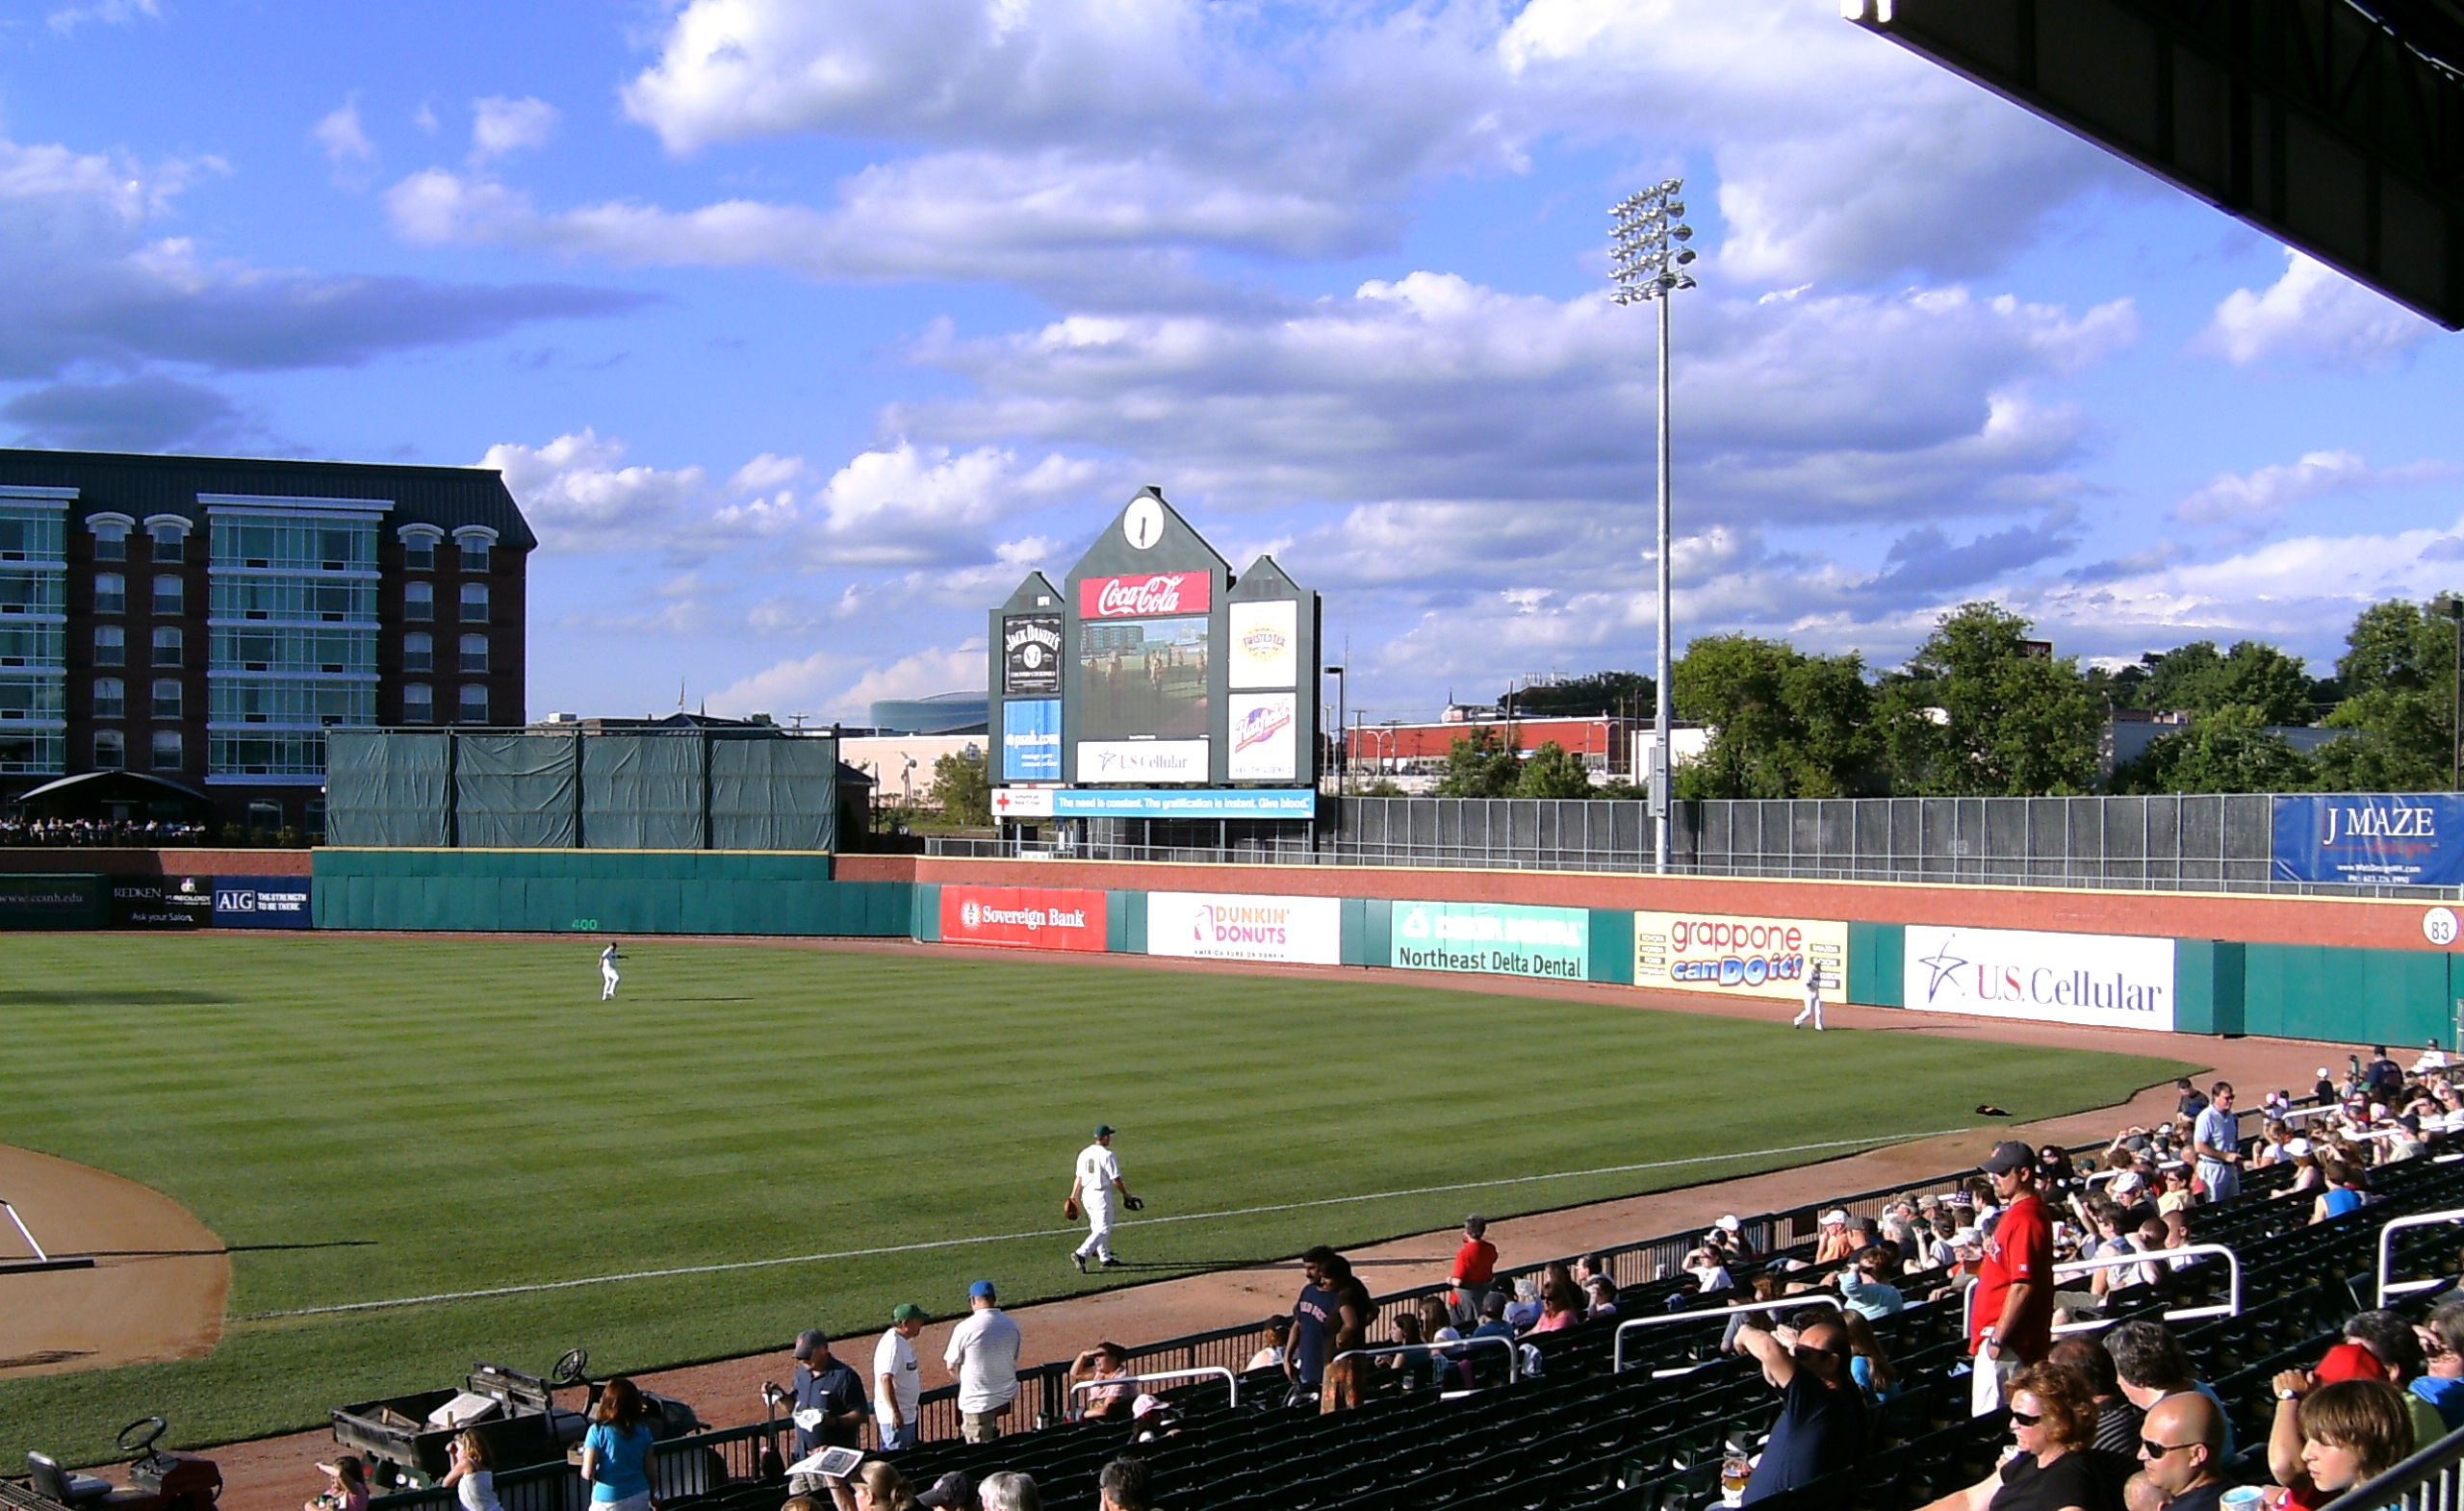 Minor League Baseball In Manchester N H Home Of The Fischer Cats Minor League Baseball Baseball Baseball Field